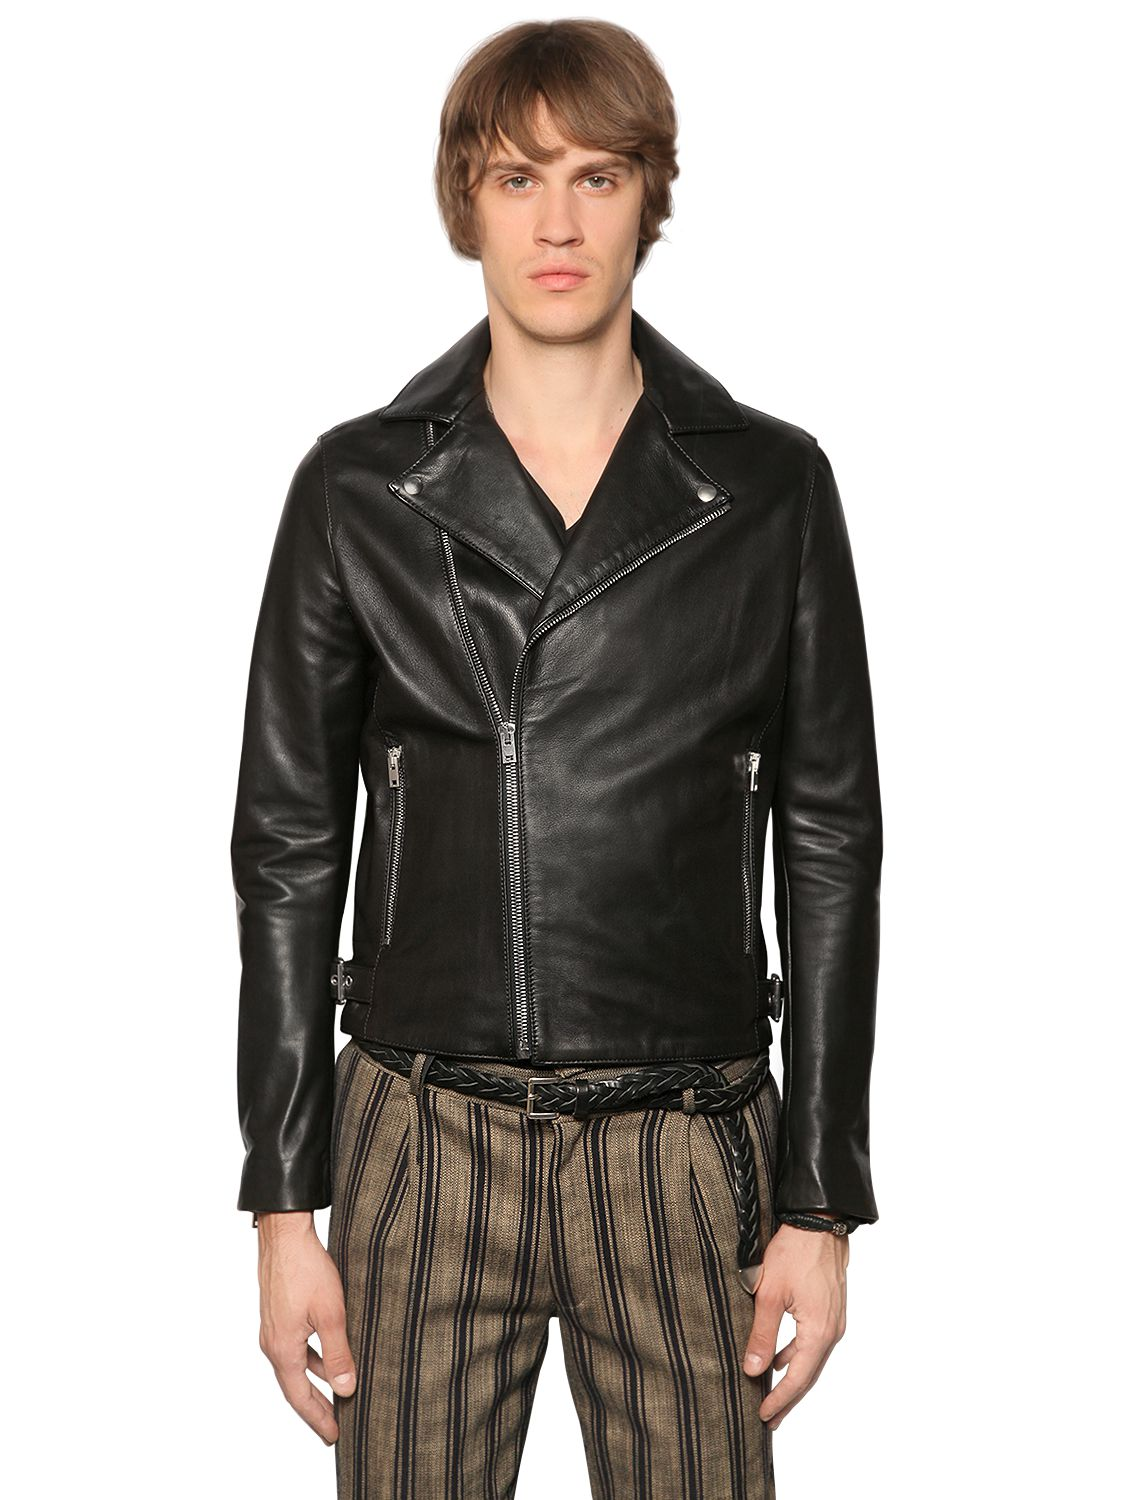 The Veste En Et Homme Biker Vêtements Marron Cuir Kooples Daim rq6wHgxr